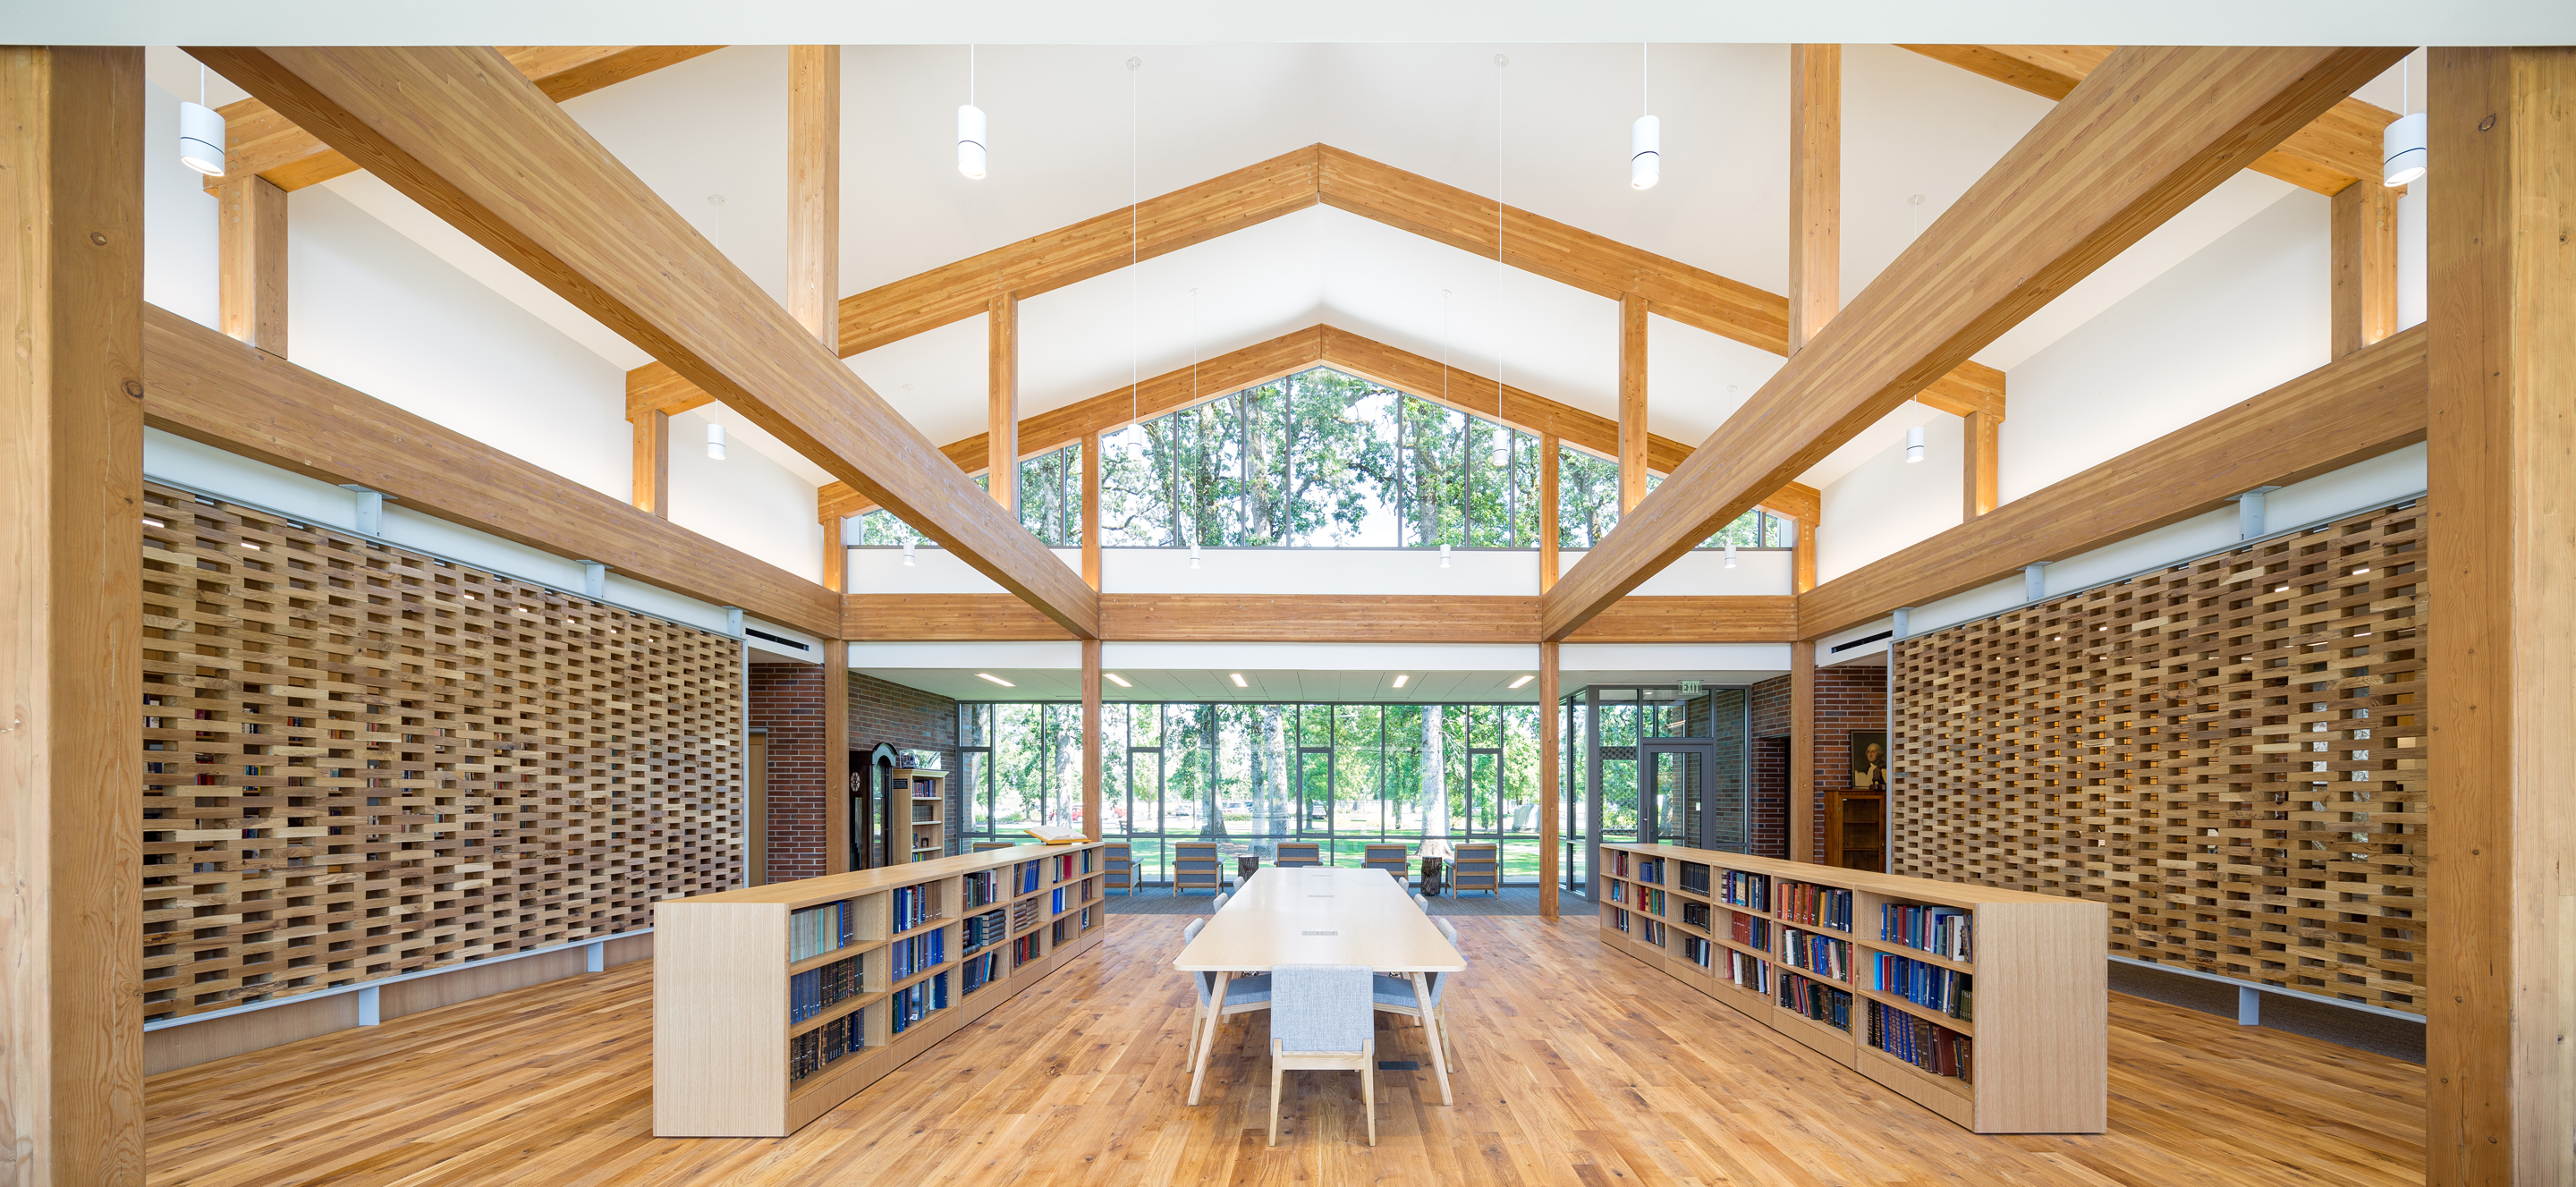 Oregon library design Hennebery Eddy Architects